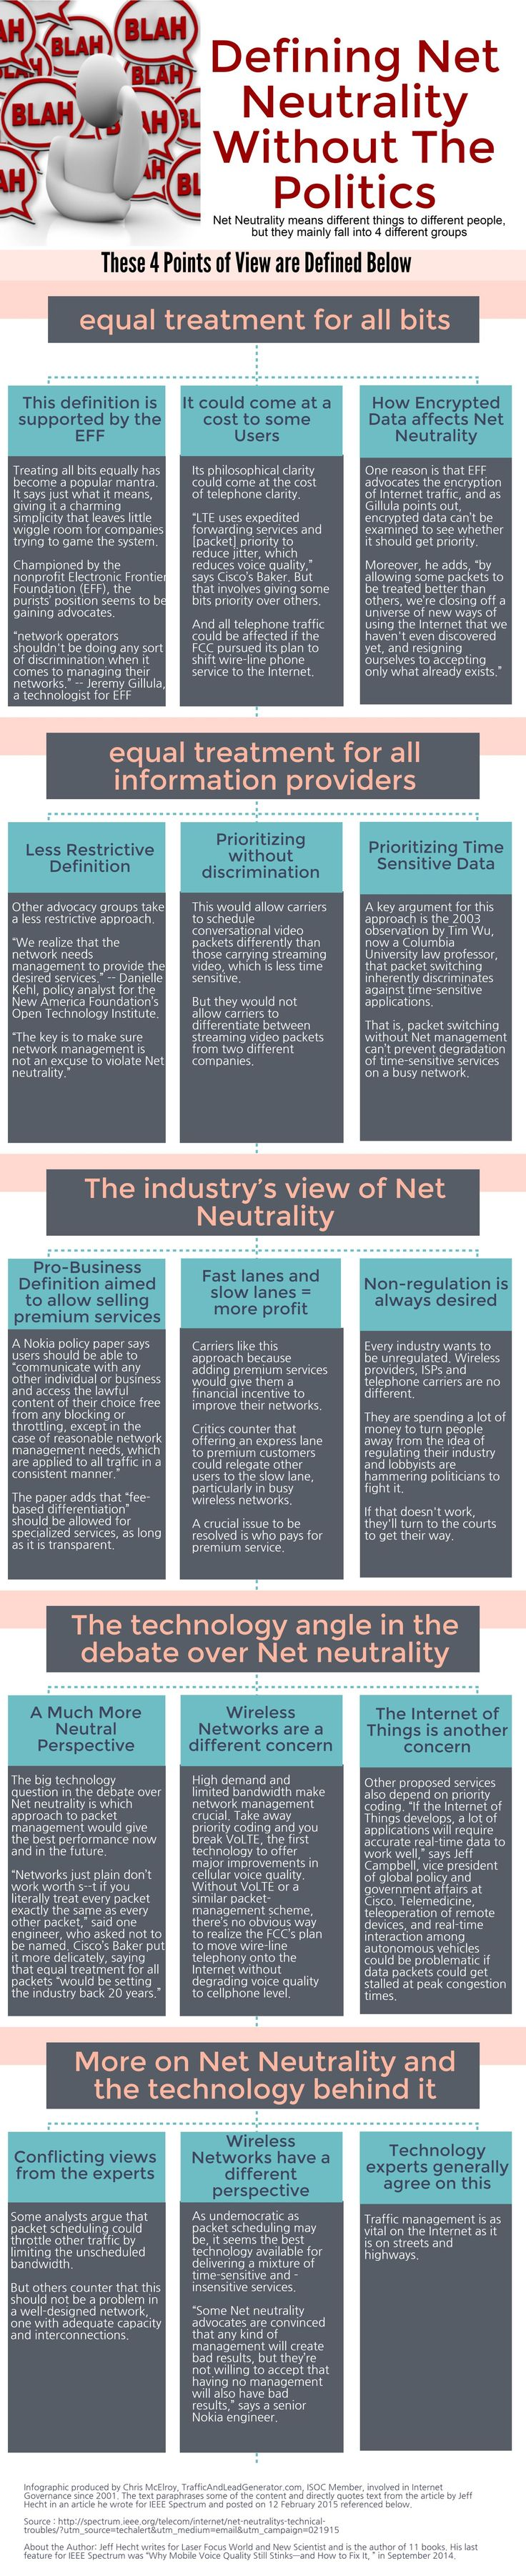 Defining Net Neutrality Without The Politics